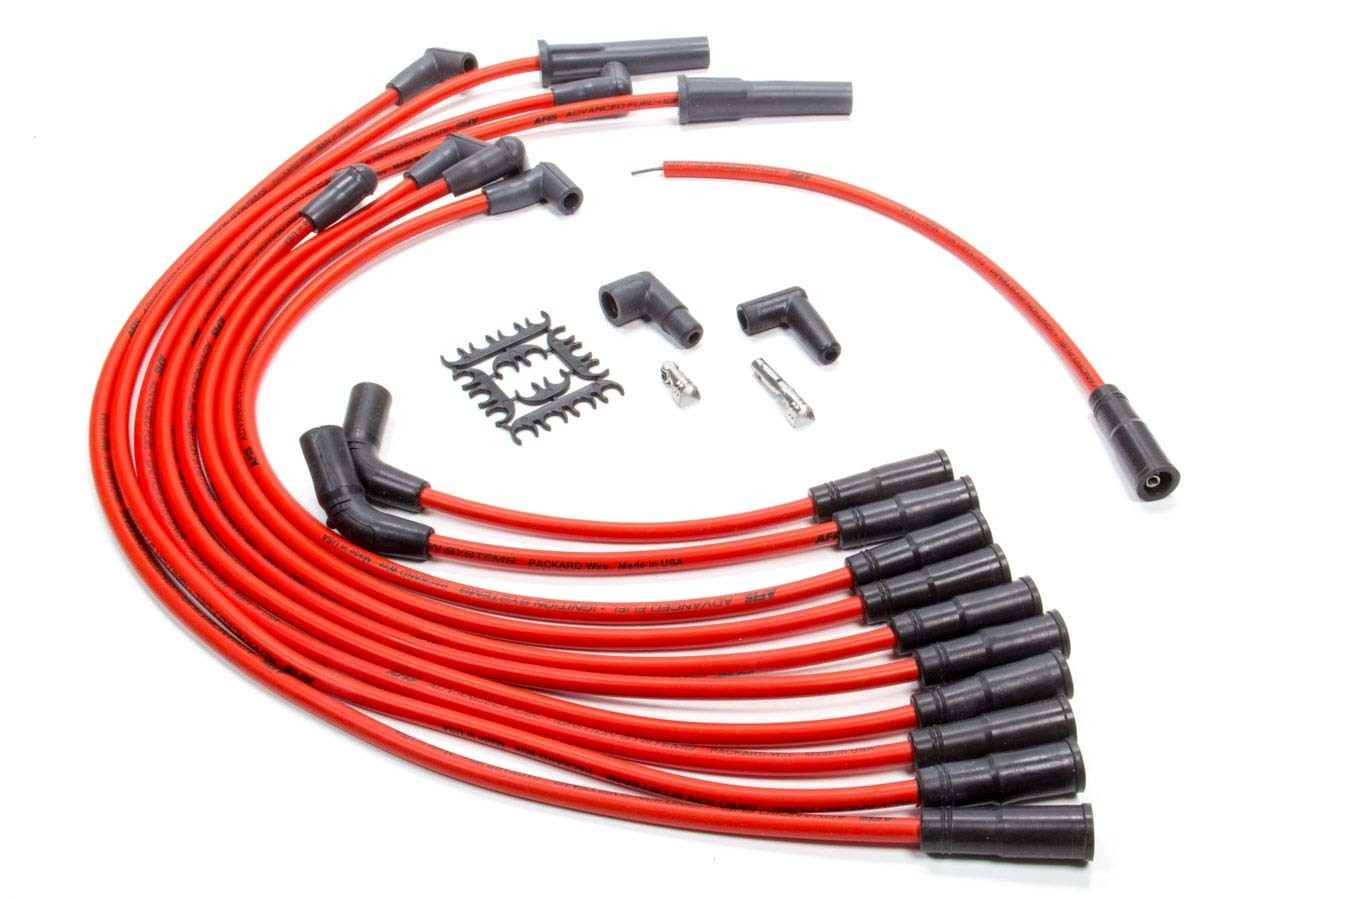 AFIS 850316 Spark Plug Wire Set, Series 50, Spiral Core, 8.5 mm, Red, Straight Plug Boots, HEI Style Terminal, GM LT-Series, Kit